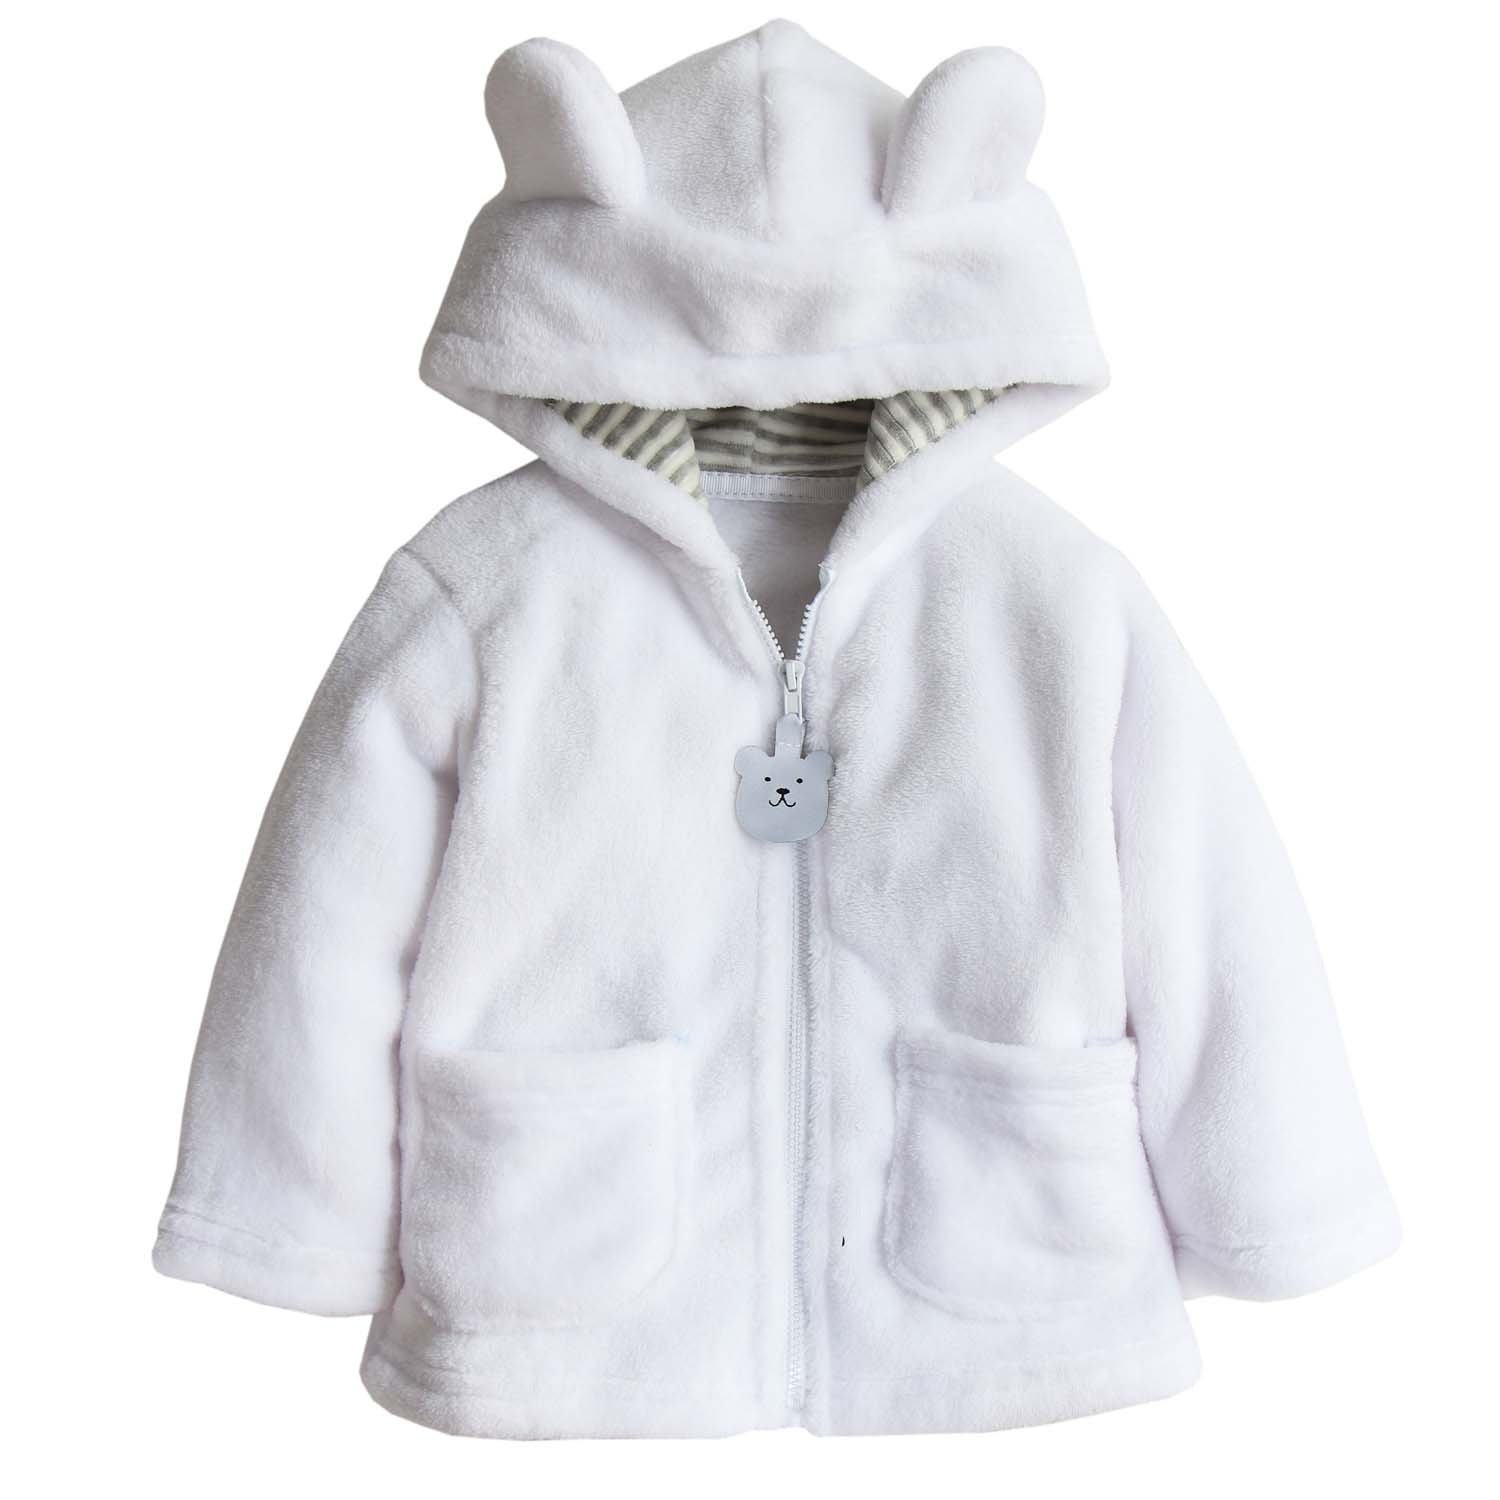 Toddler Baby Boys Girls Cartoon Fleece Hooded Jacket Coat with Ears size 6-12 Months (White) by EGELEXY